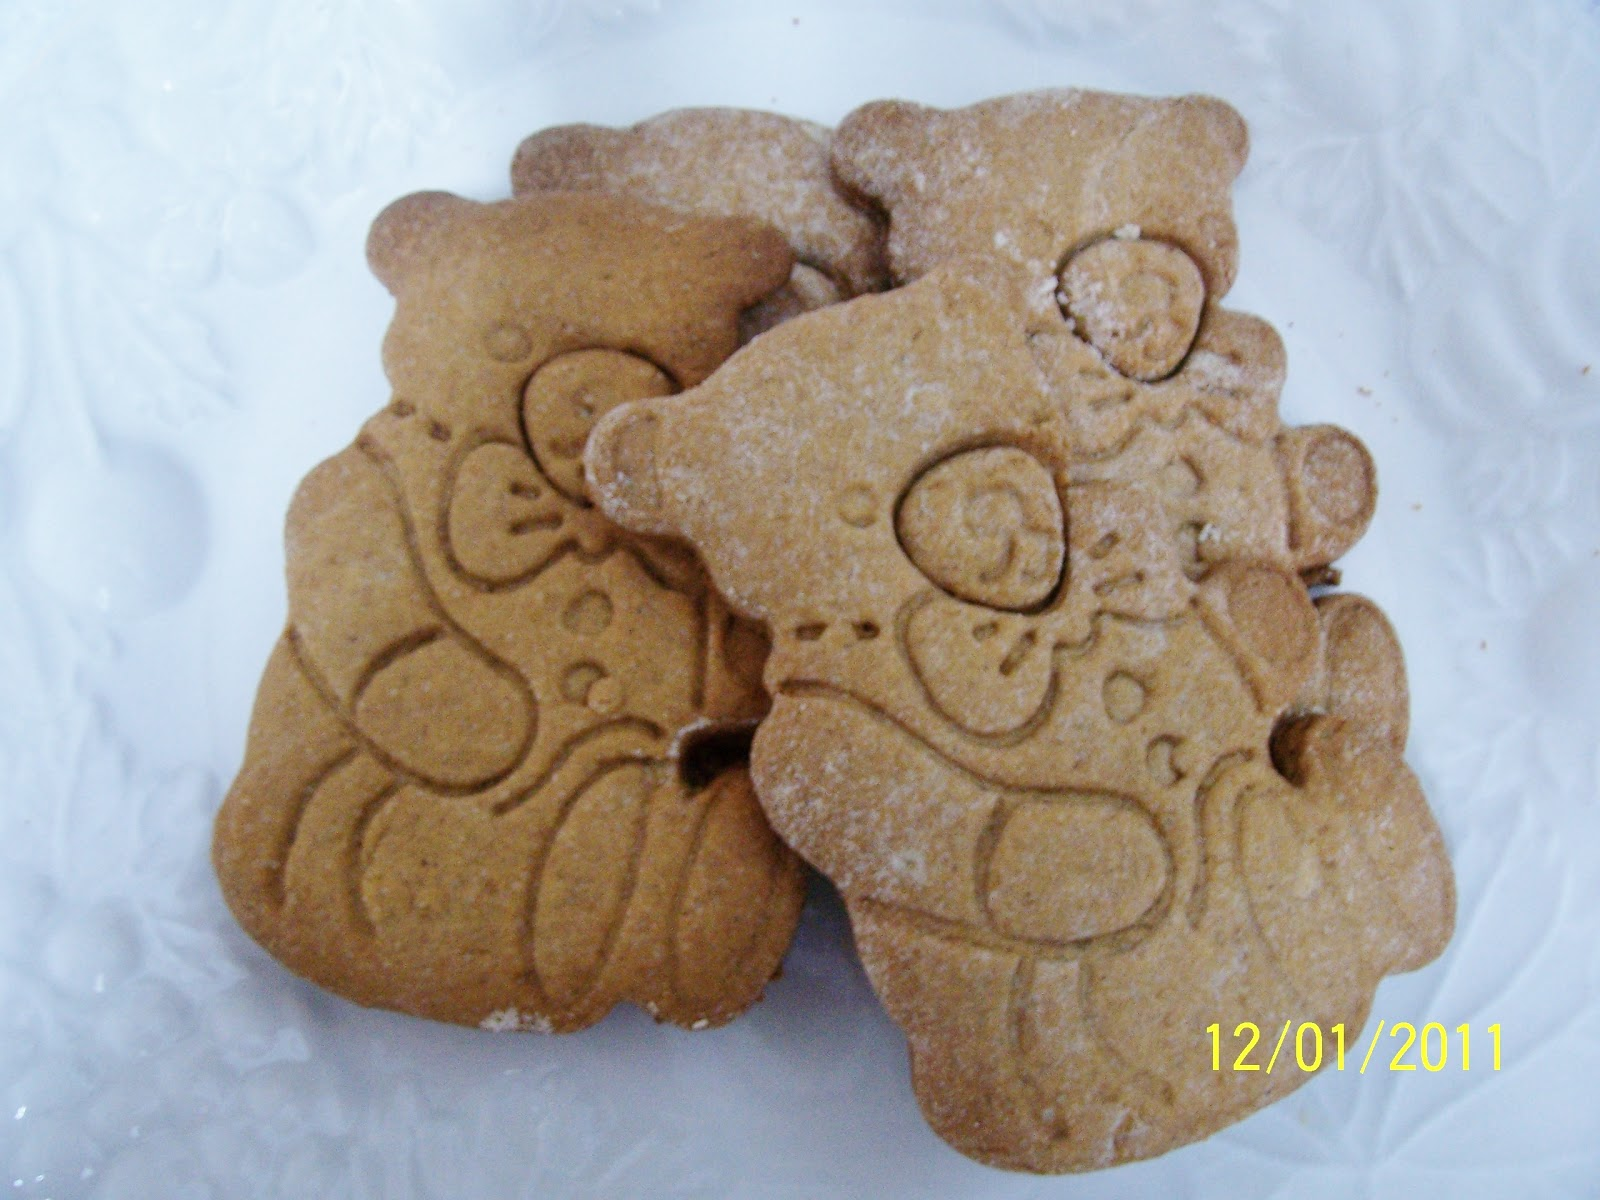 ... gluten free gingerbread men or bears ingredients 4 cups of gluten free